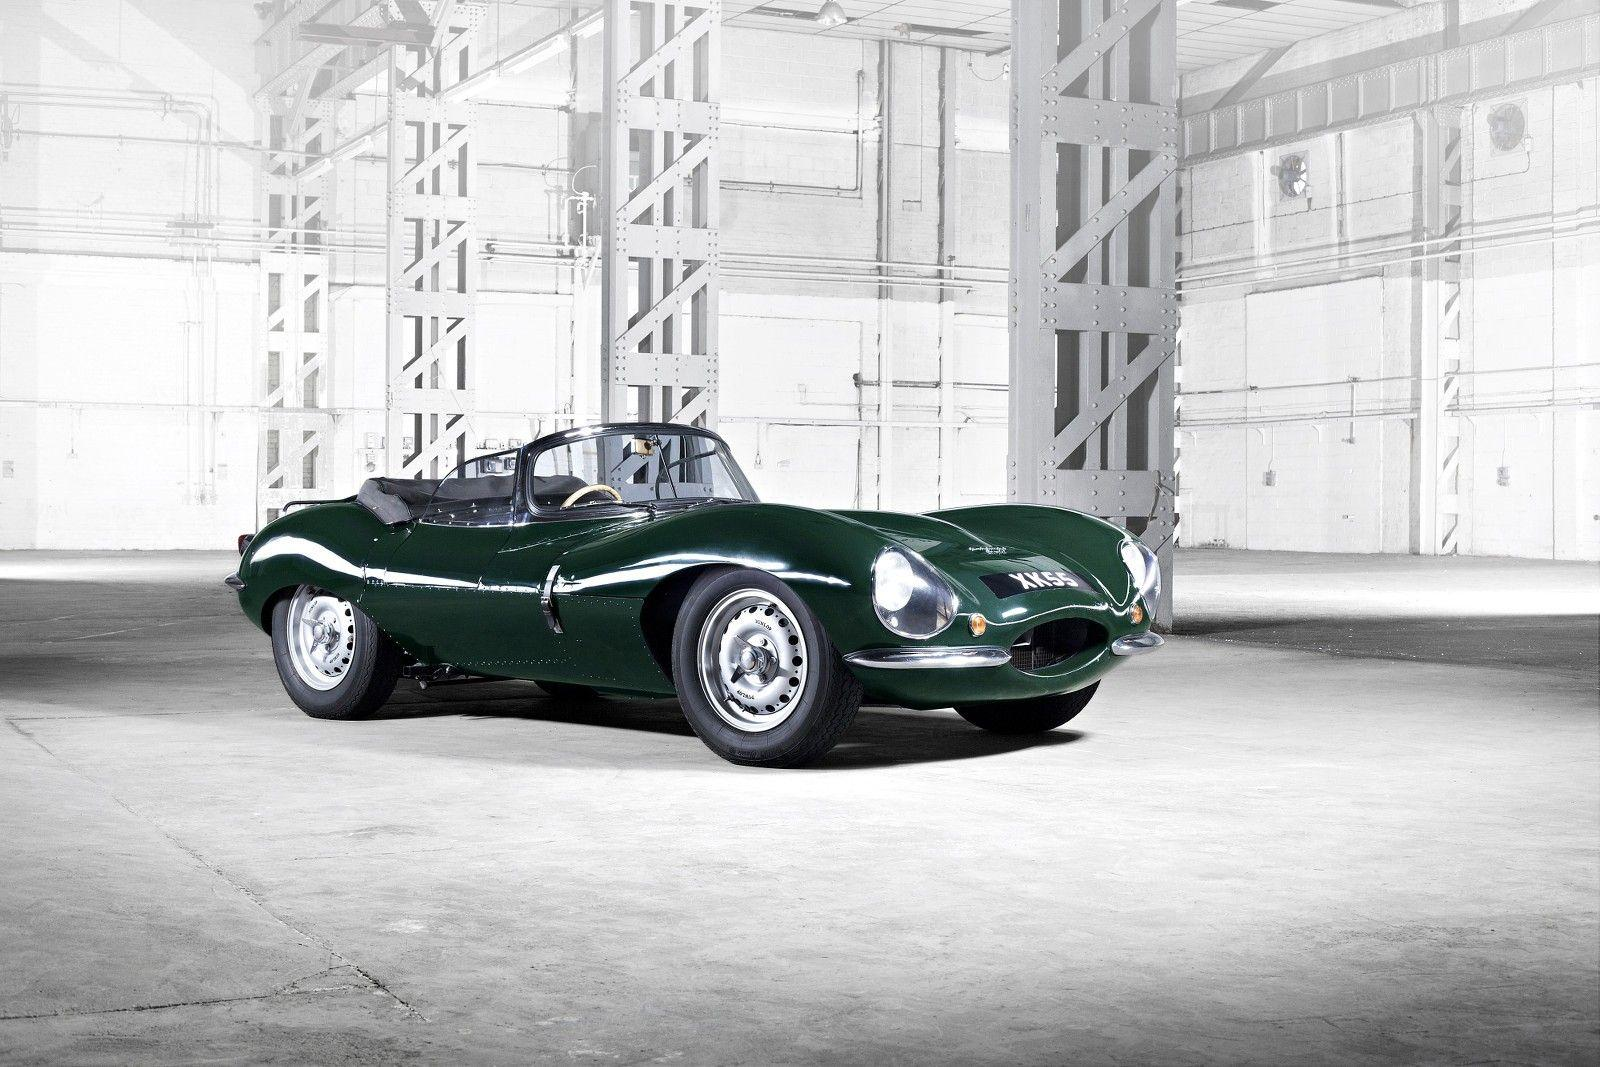 Jaguar's Most Iconic Car: The Jaguar XKSS